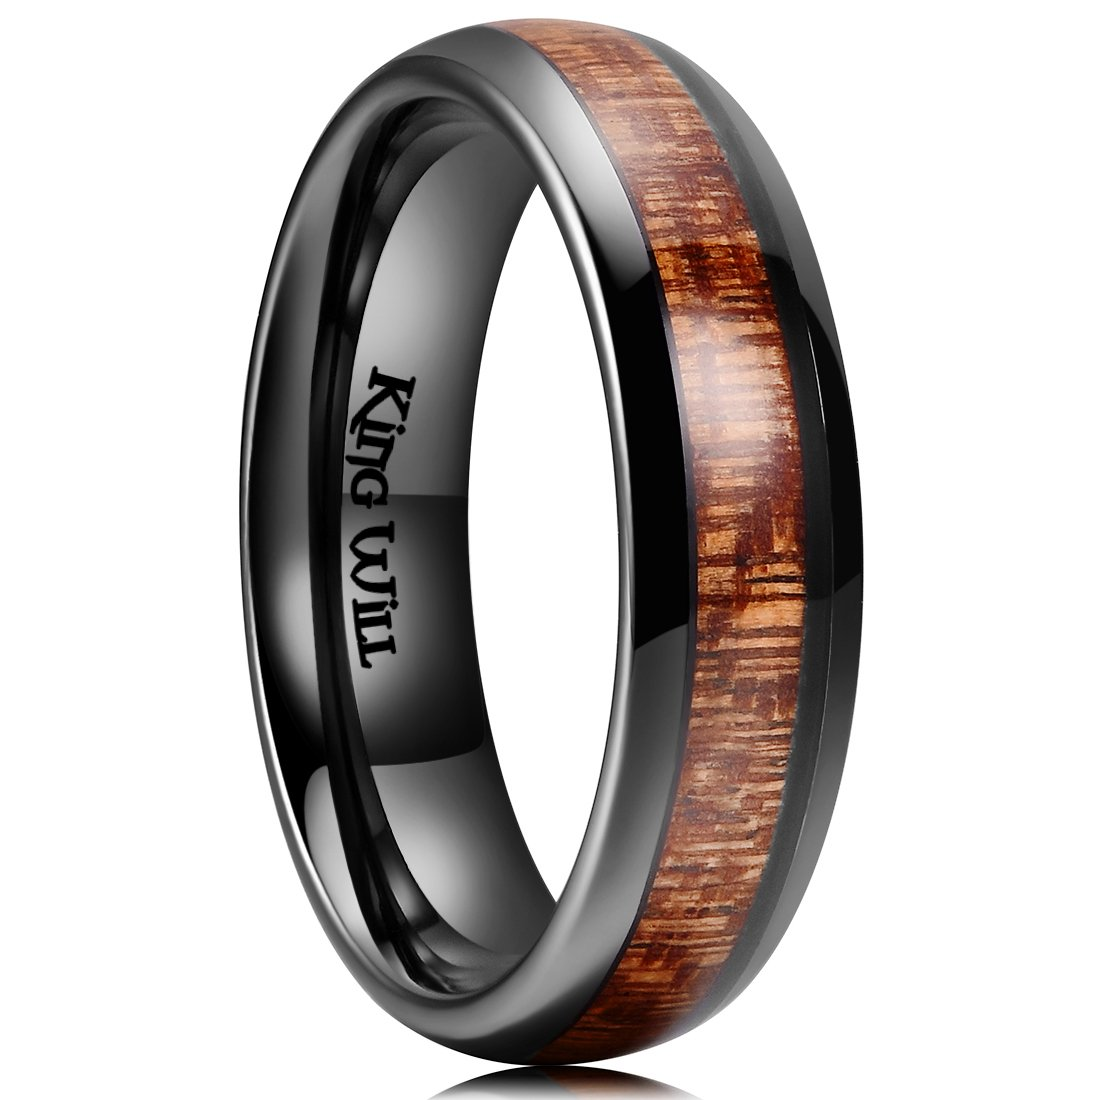 King Will NATURE 6mm Black Domed Koa Wood Ceramic Ring Wedding Band Polished Finish Comfort Fit 10